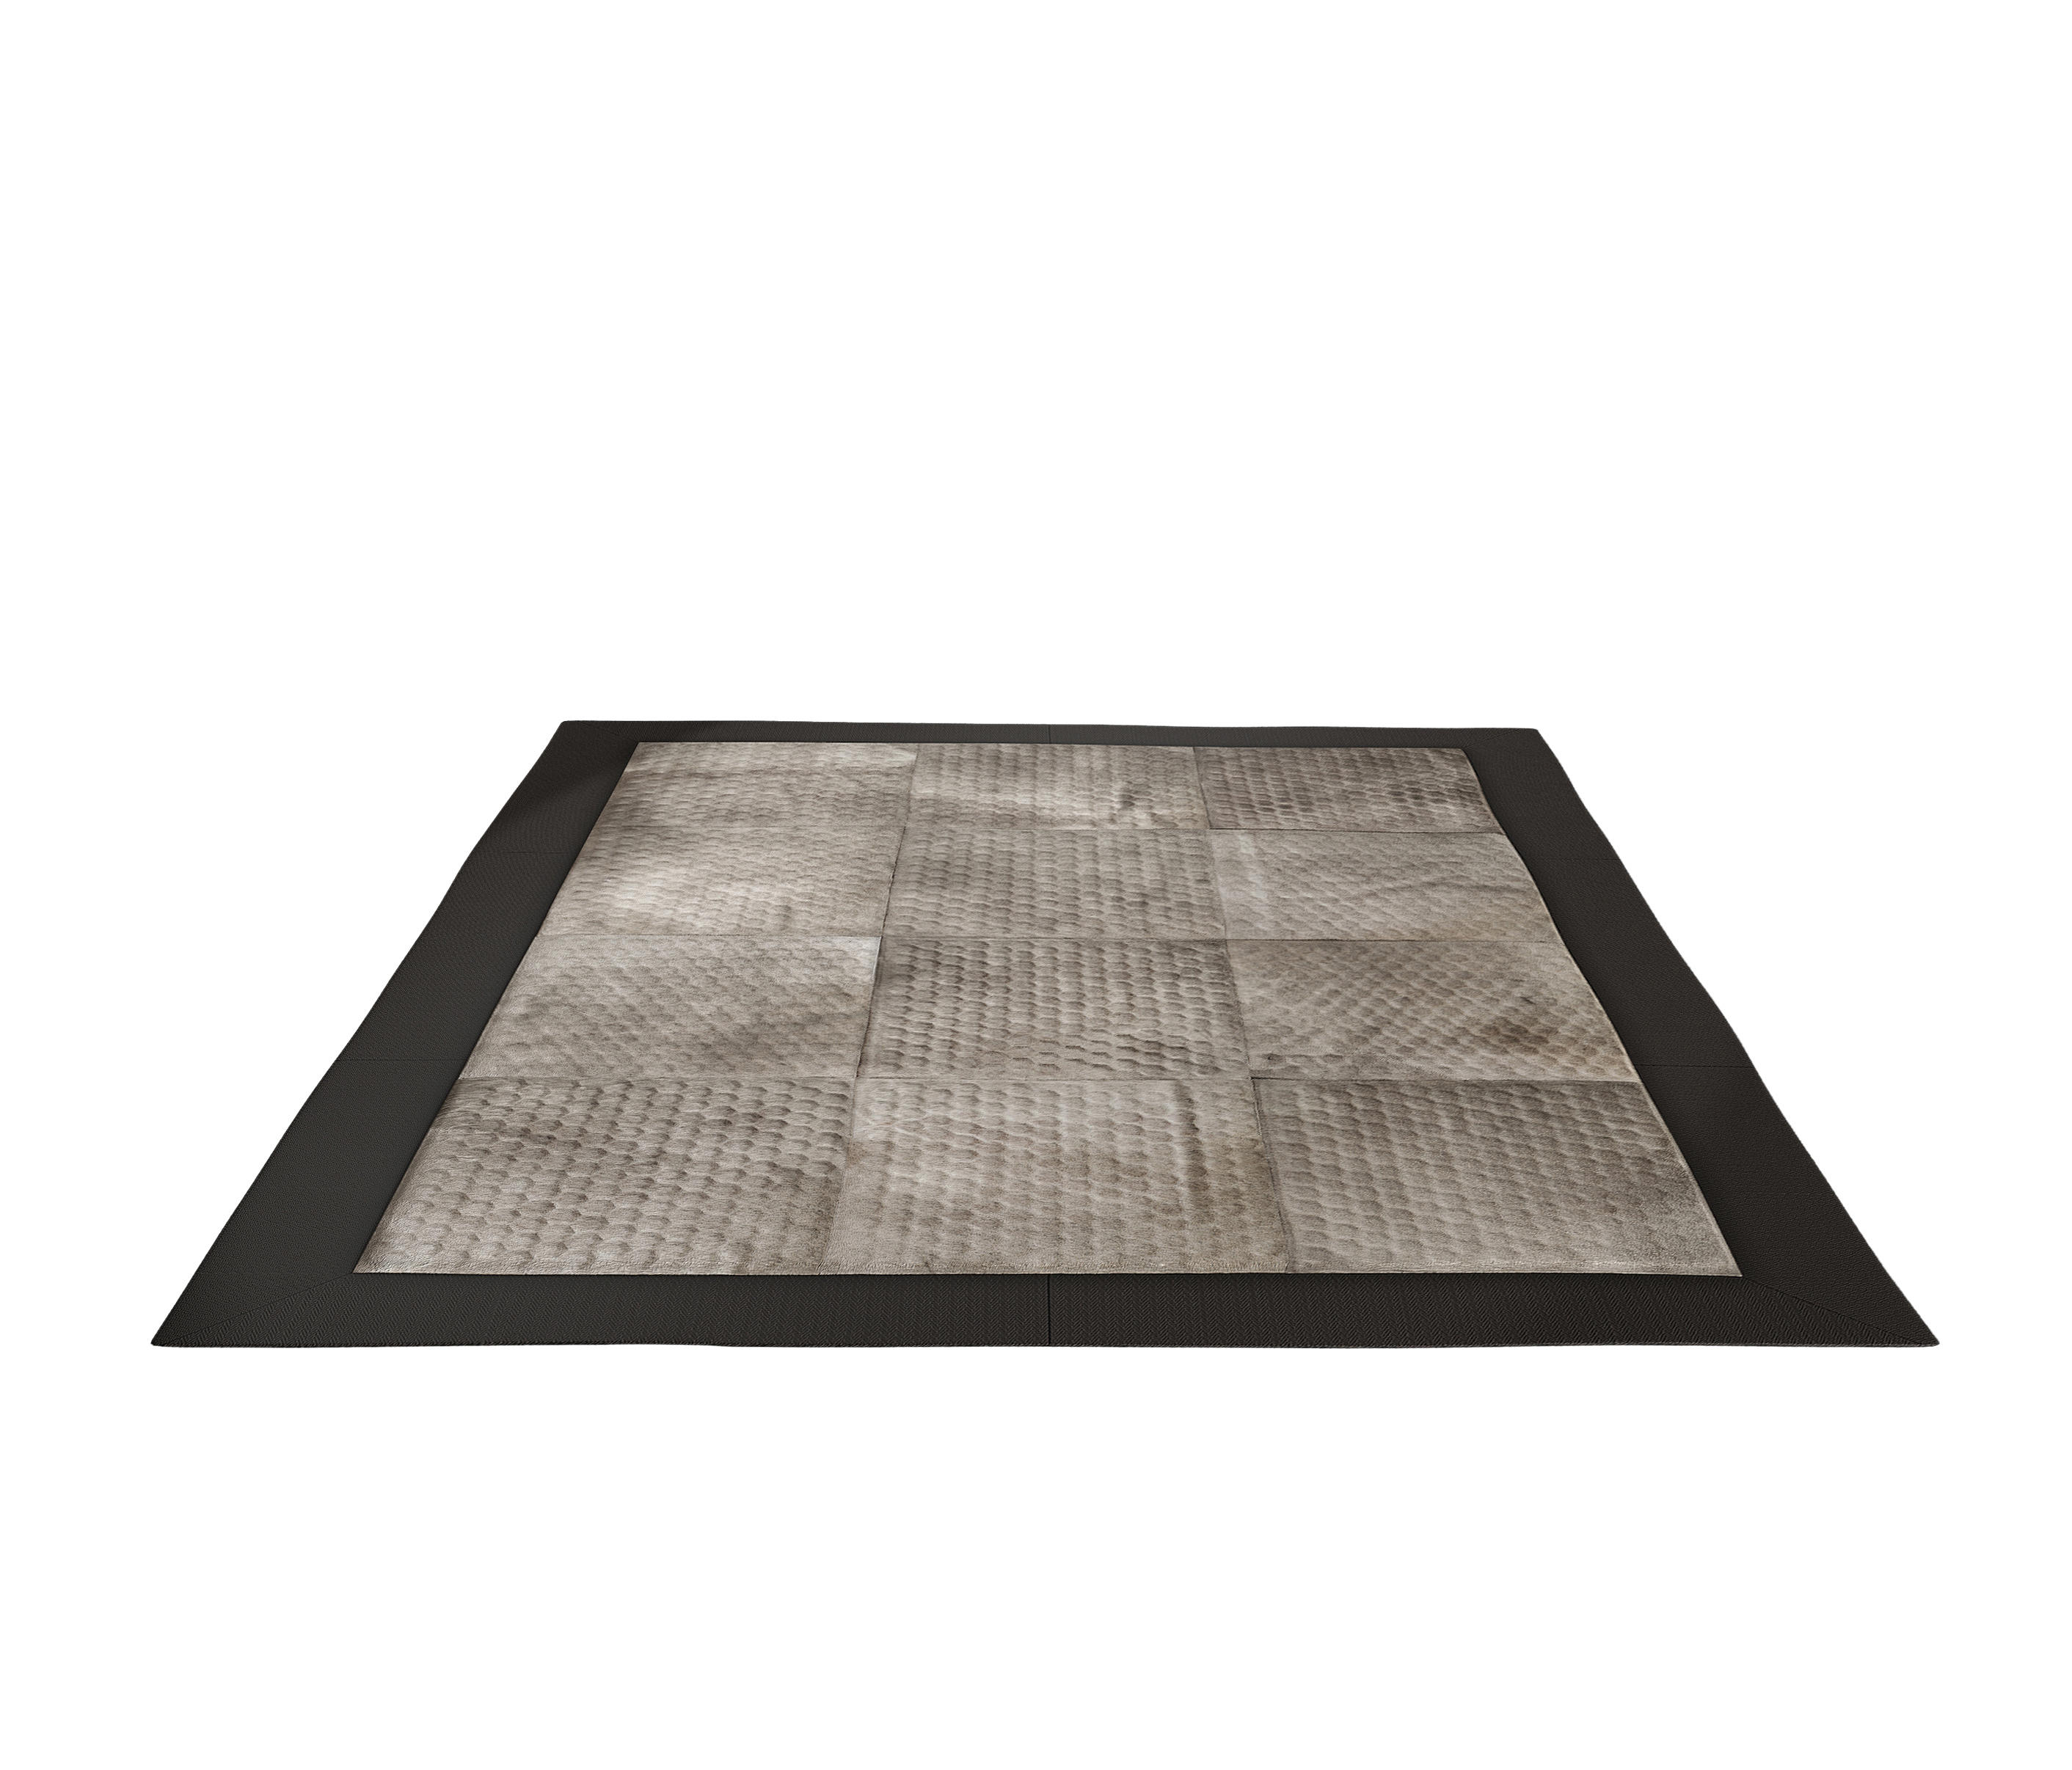 KARPET 10 RUG - Rugs from Capital